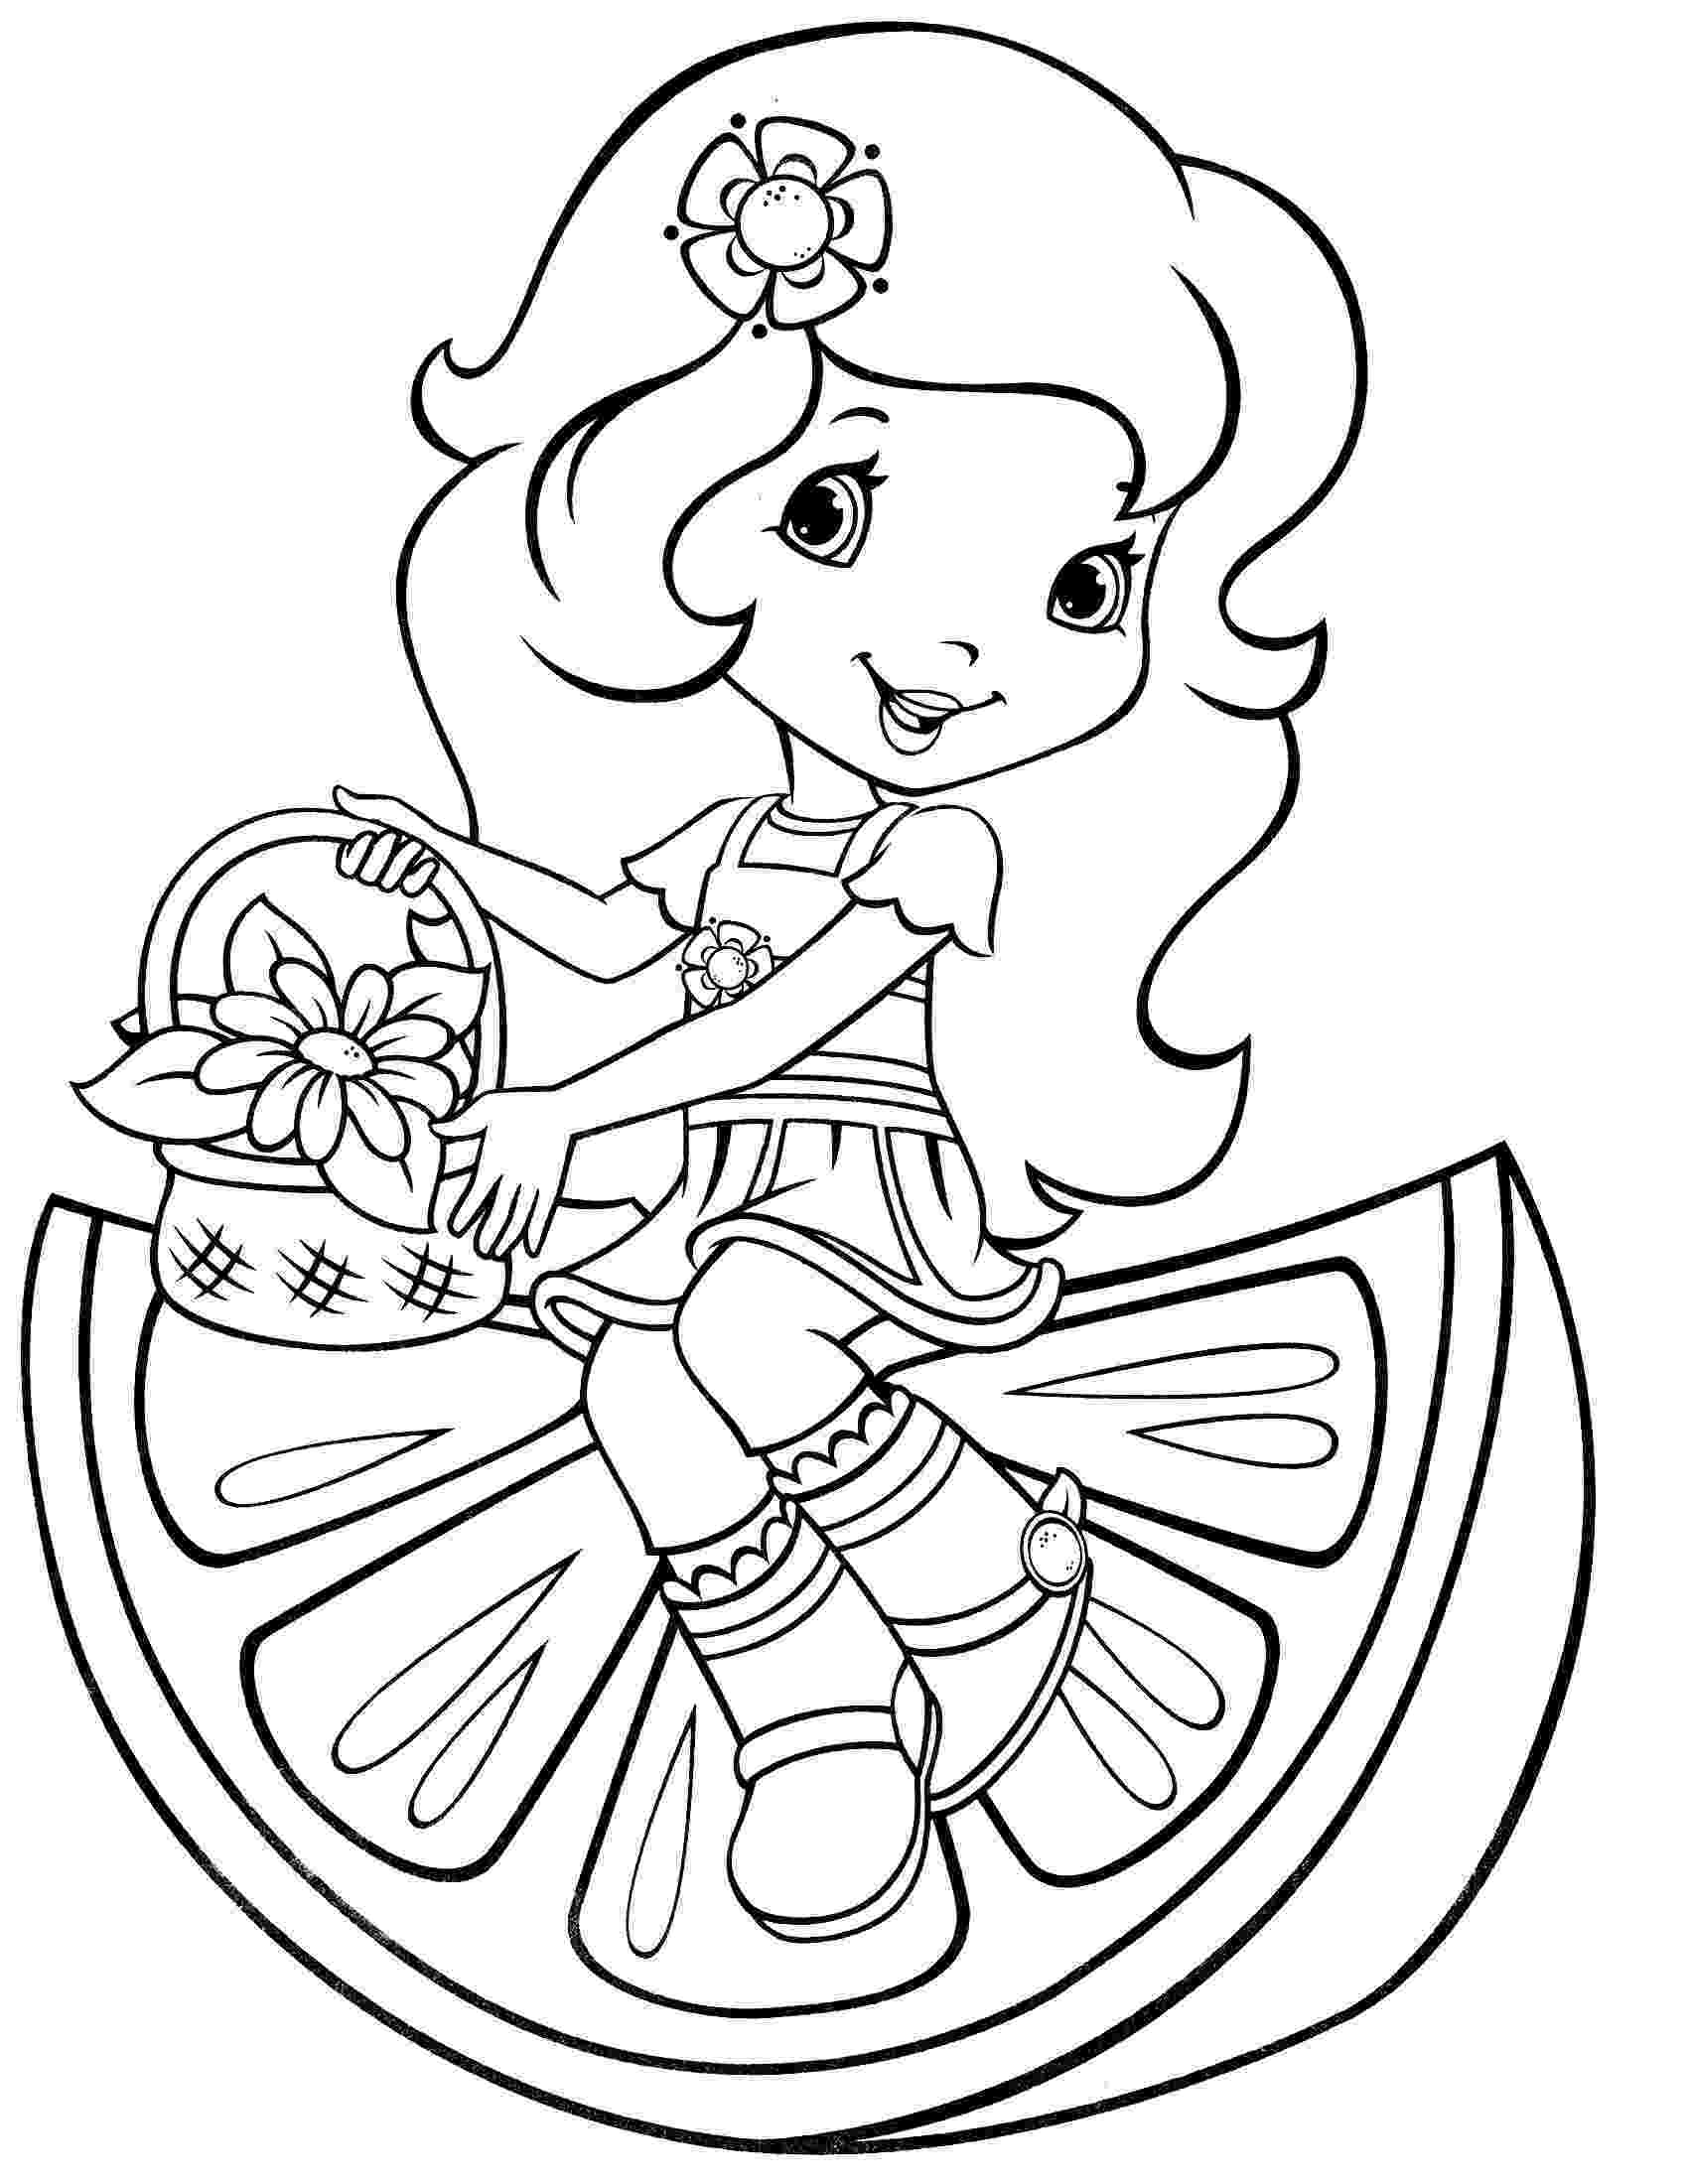 strawberry shortcake colouring pictures strawberry shortcake coloring pages team colors colouring shortcake pictures strawberry